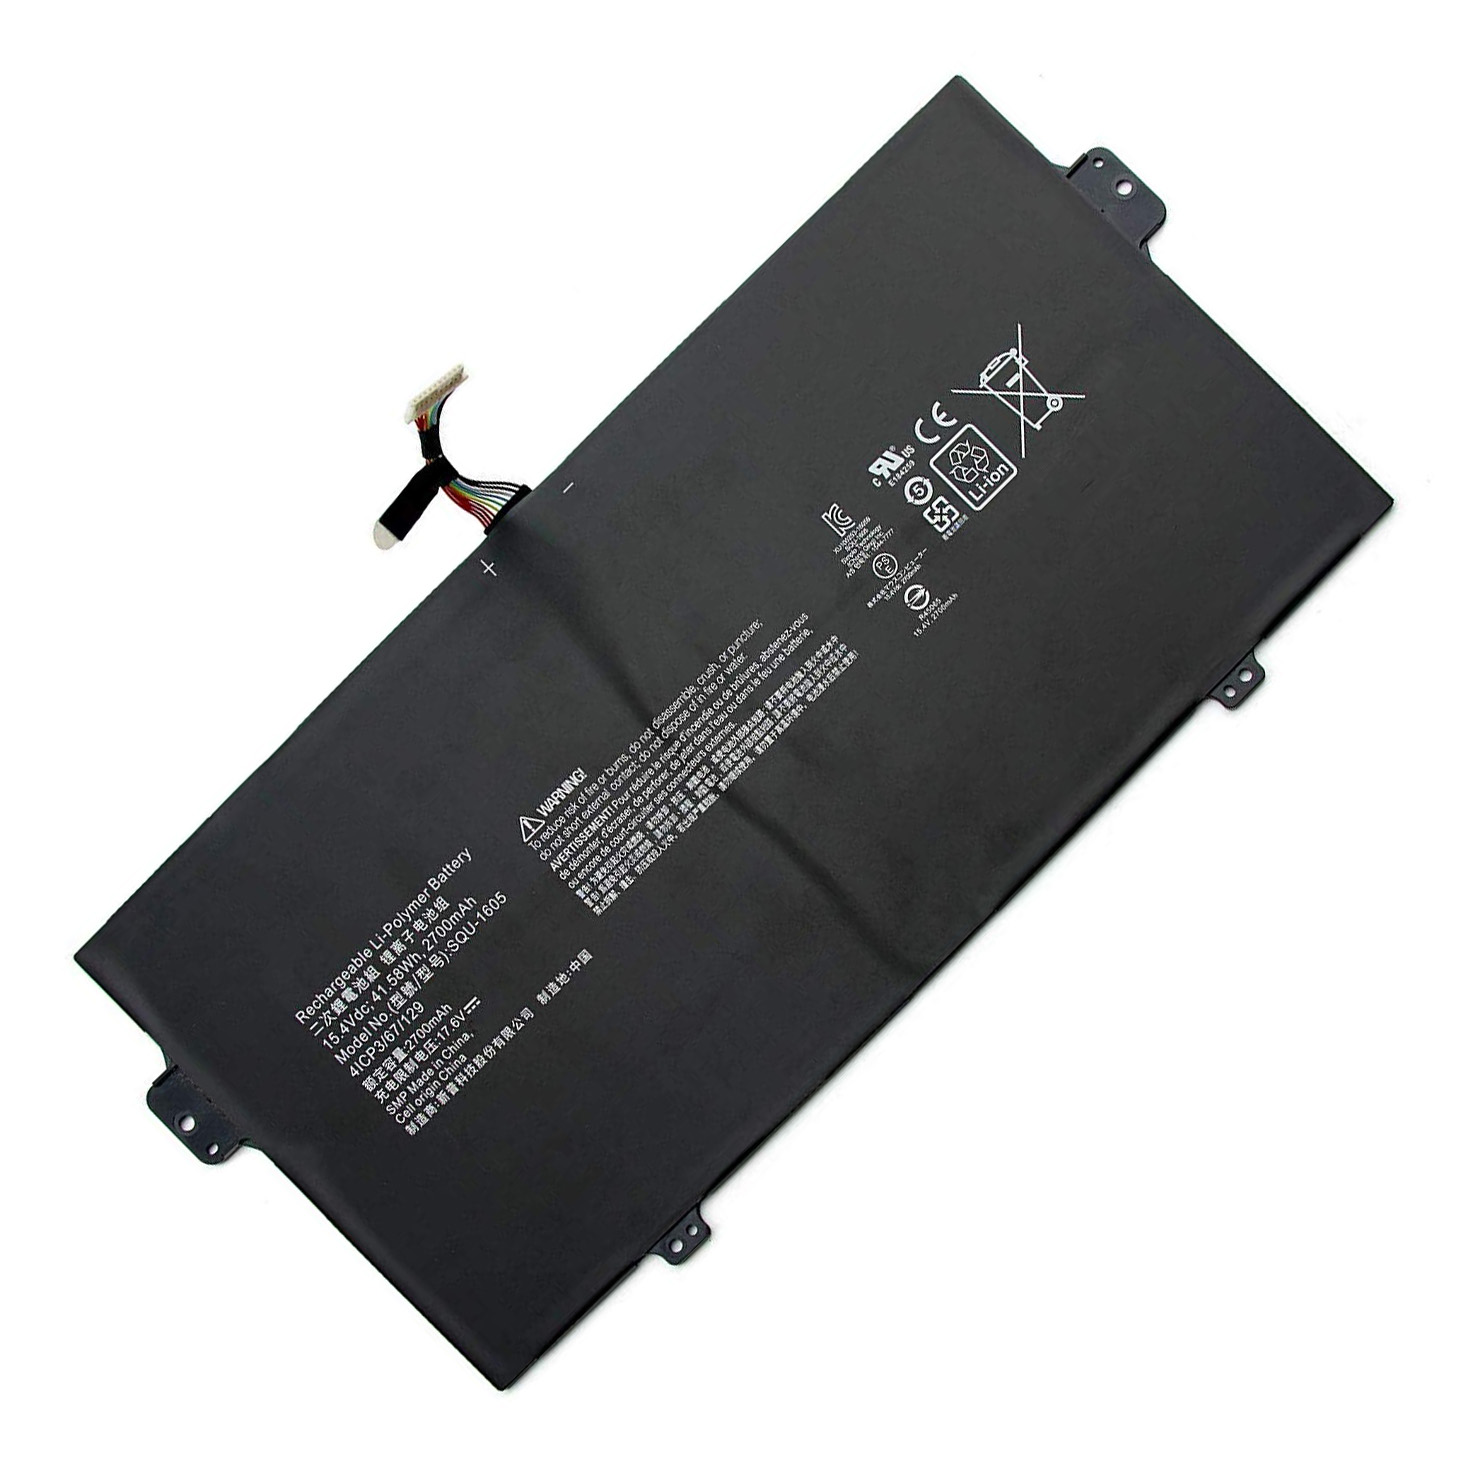 Swift 7 SF713-51 Batterie